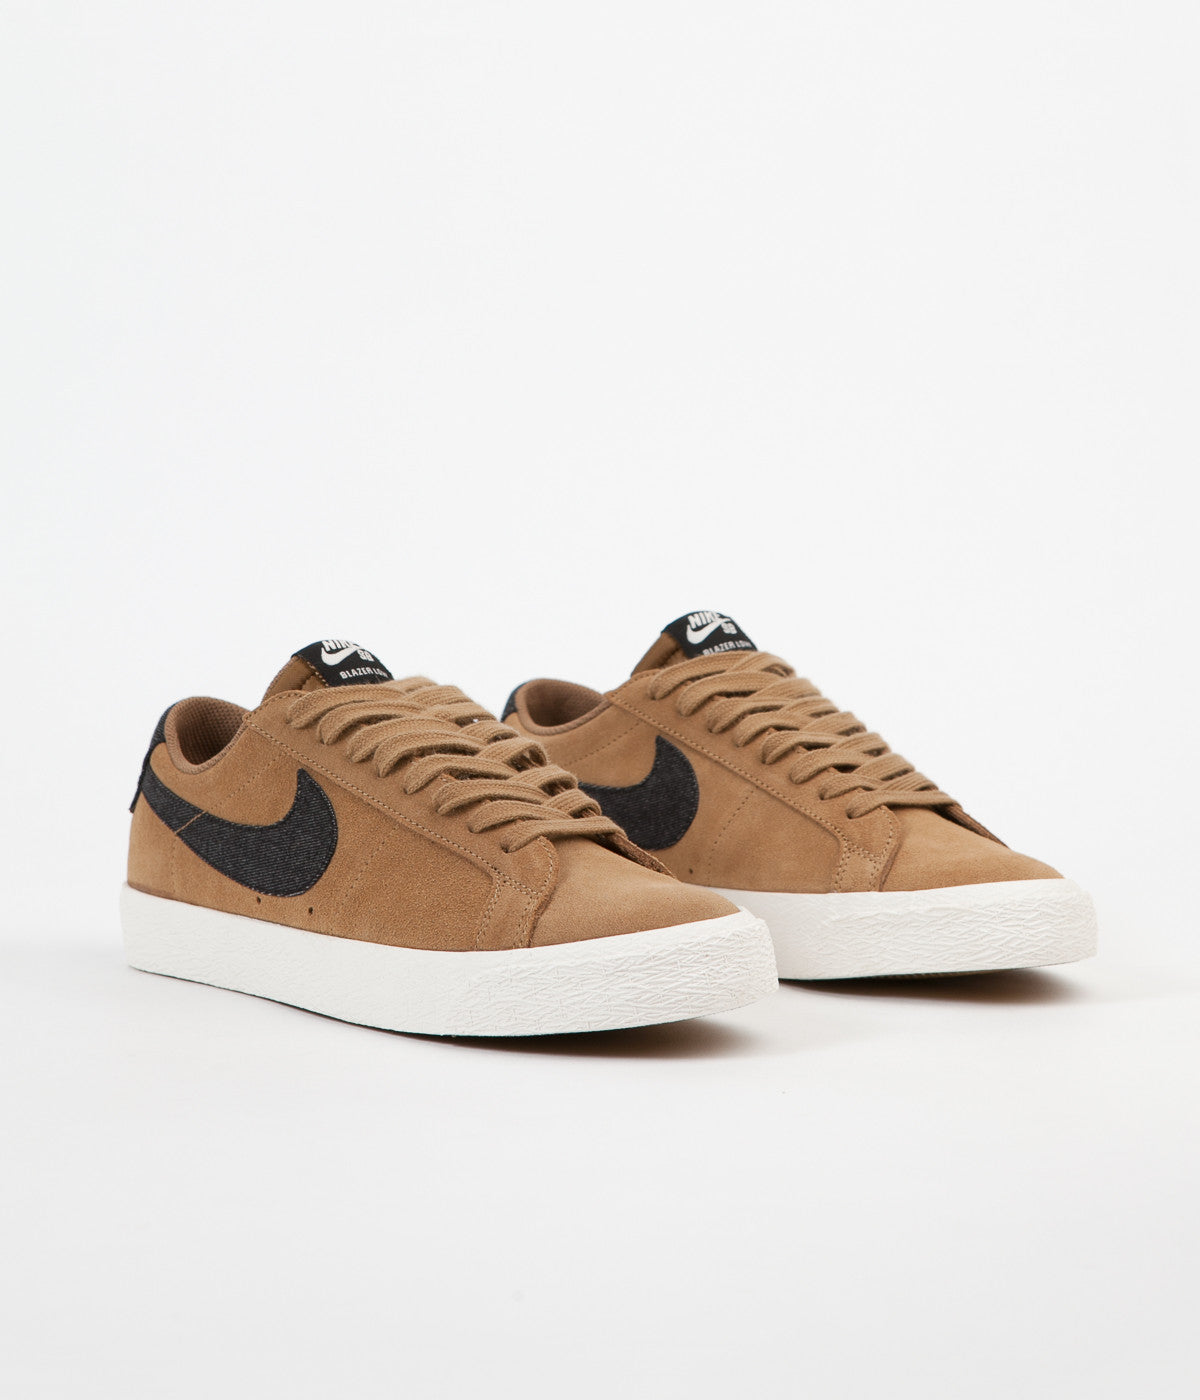 new concept 9d2bd 1545e ... Nike SB Blazer Low Shoes - Golden Beige   Black - Sail - Gum Light  Brown ...